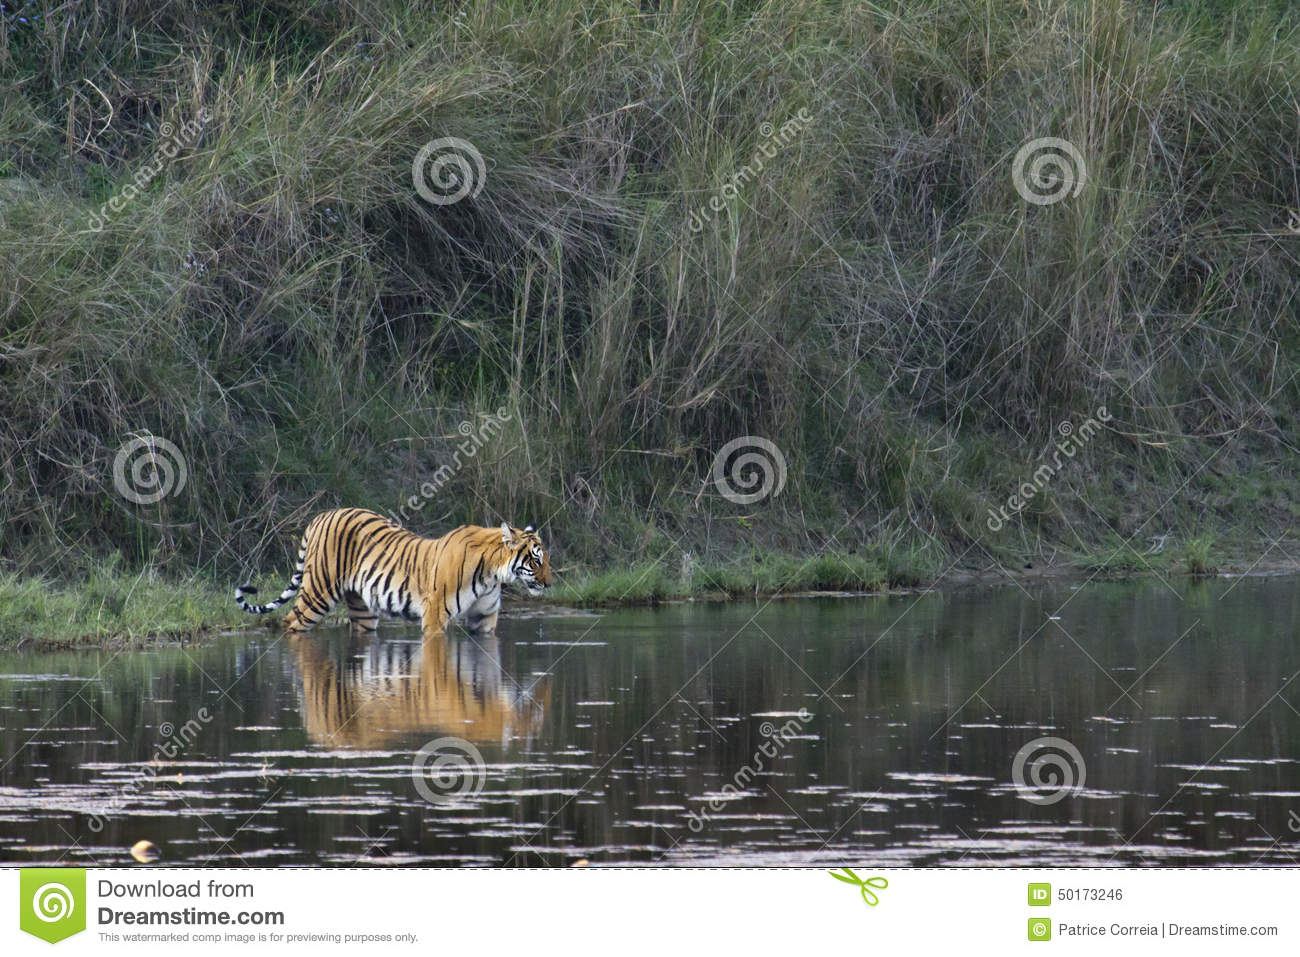 Bardia Nepal  city photo : Panthera tigris, bengal tiger crossing Karnali river, Bardia, Nepal.